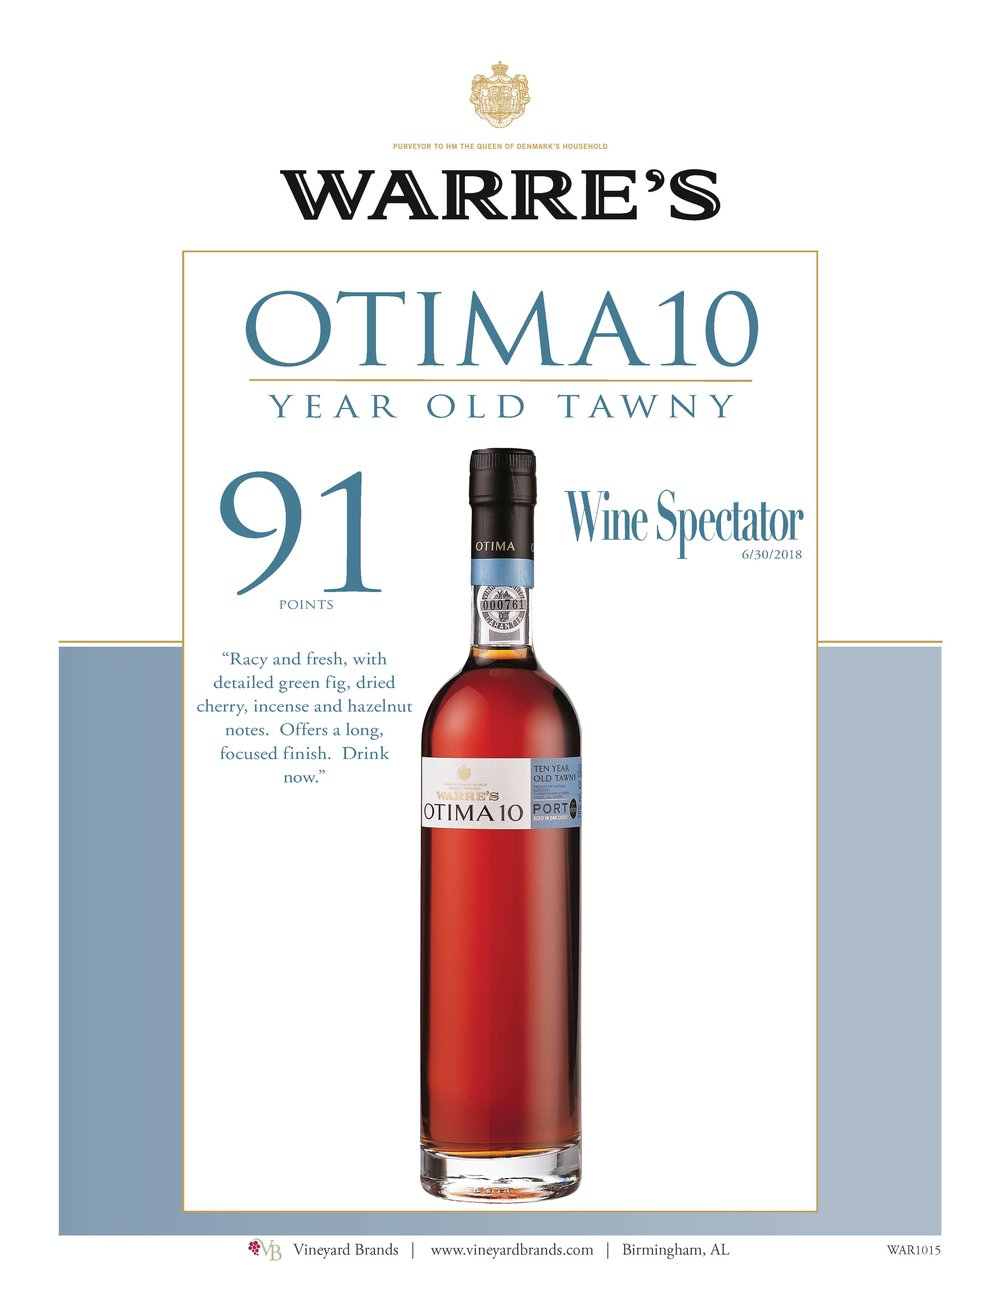 Warre's Otimat 10 Year Old Tawny.jpg